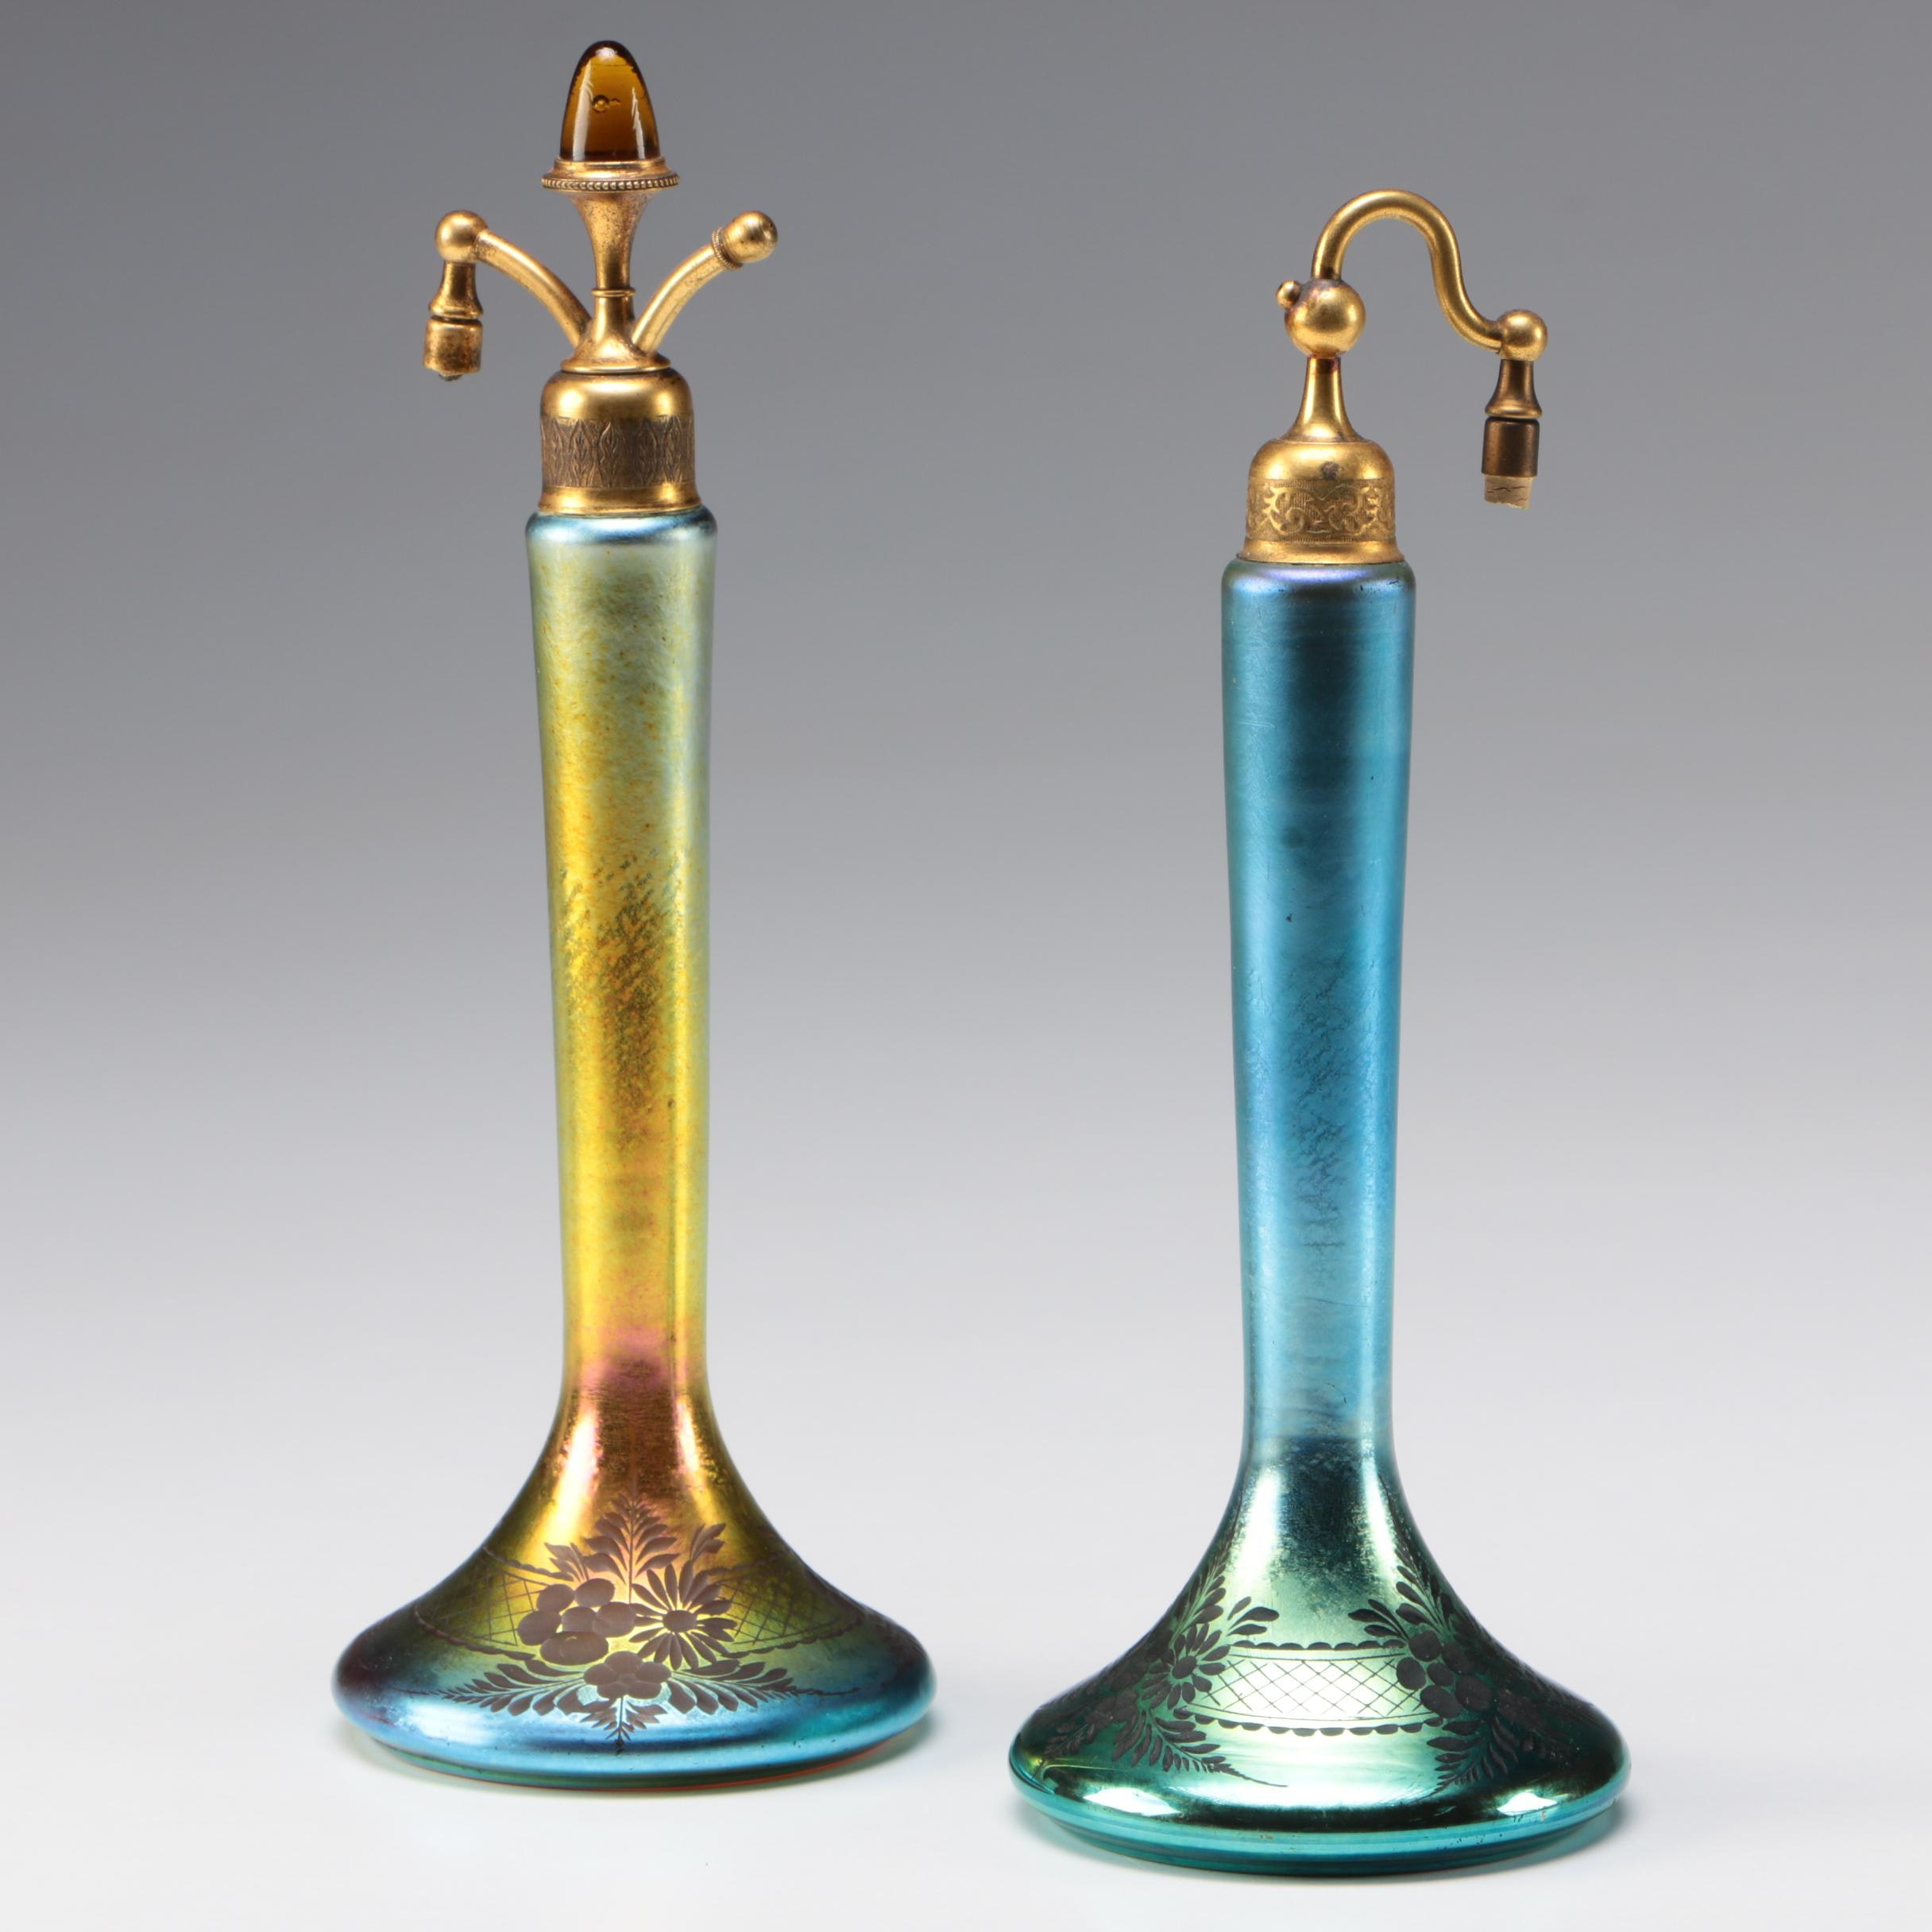 Steuben Blue and Gold Aurene DeVilbiss Art Glass Atomizers, Early 20th Century